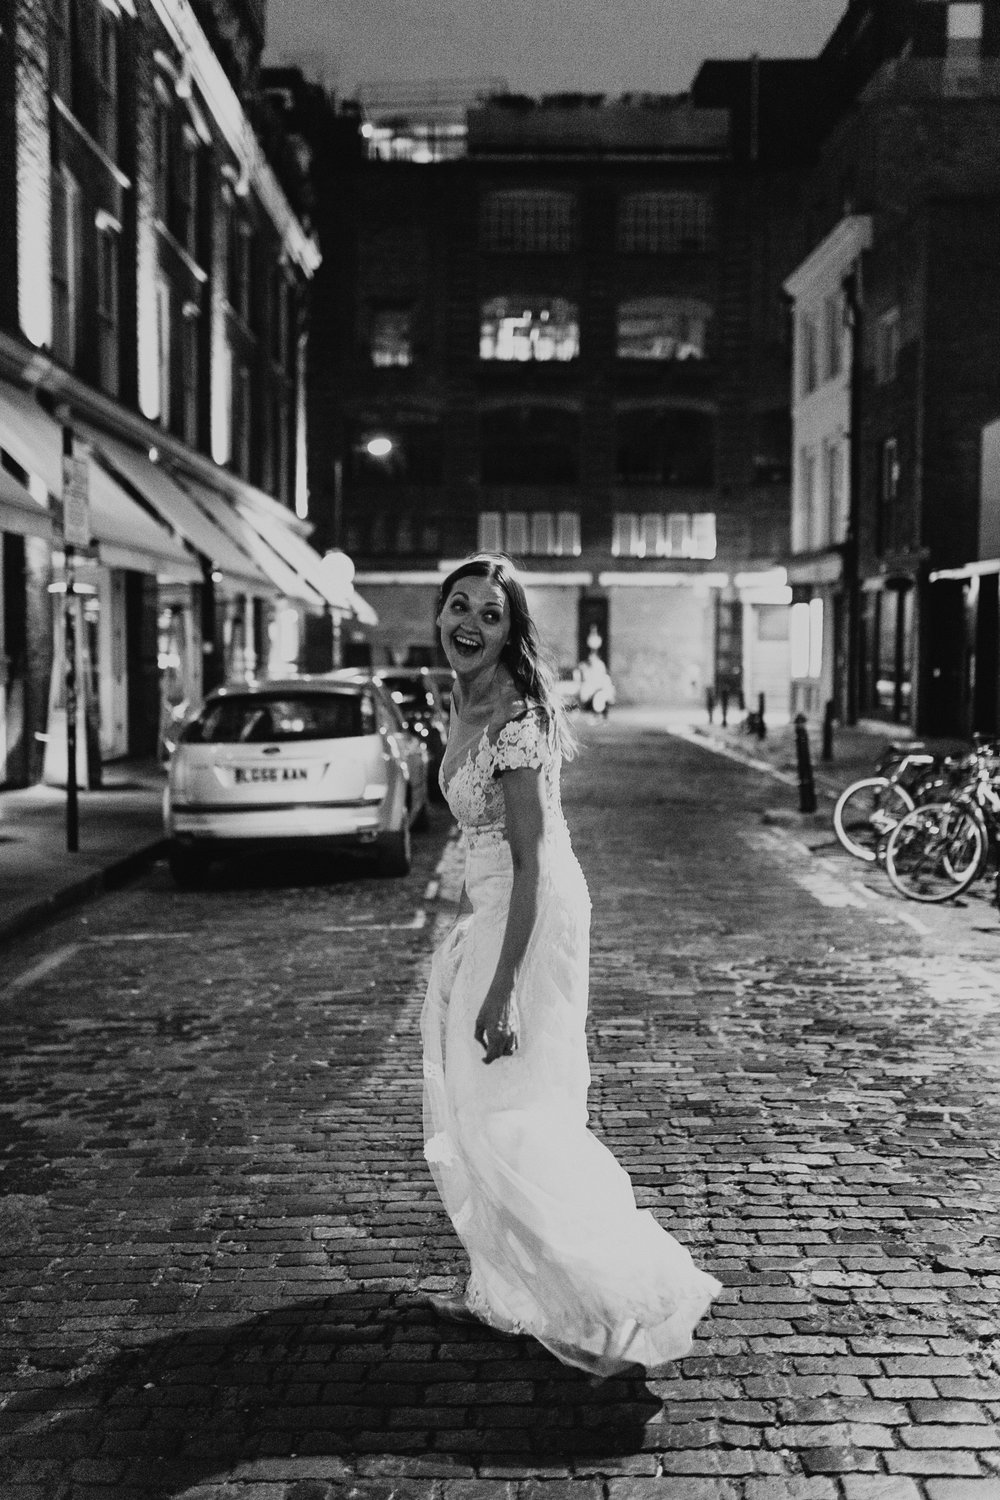 Laura-Benn-The-Asylum-London-The-Ace-Hotel-Wedding-Alternative-Darina-Stoda-Photography-803.jpg